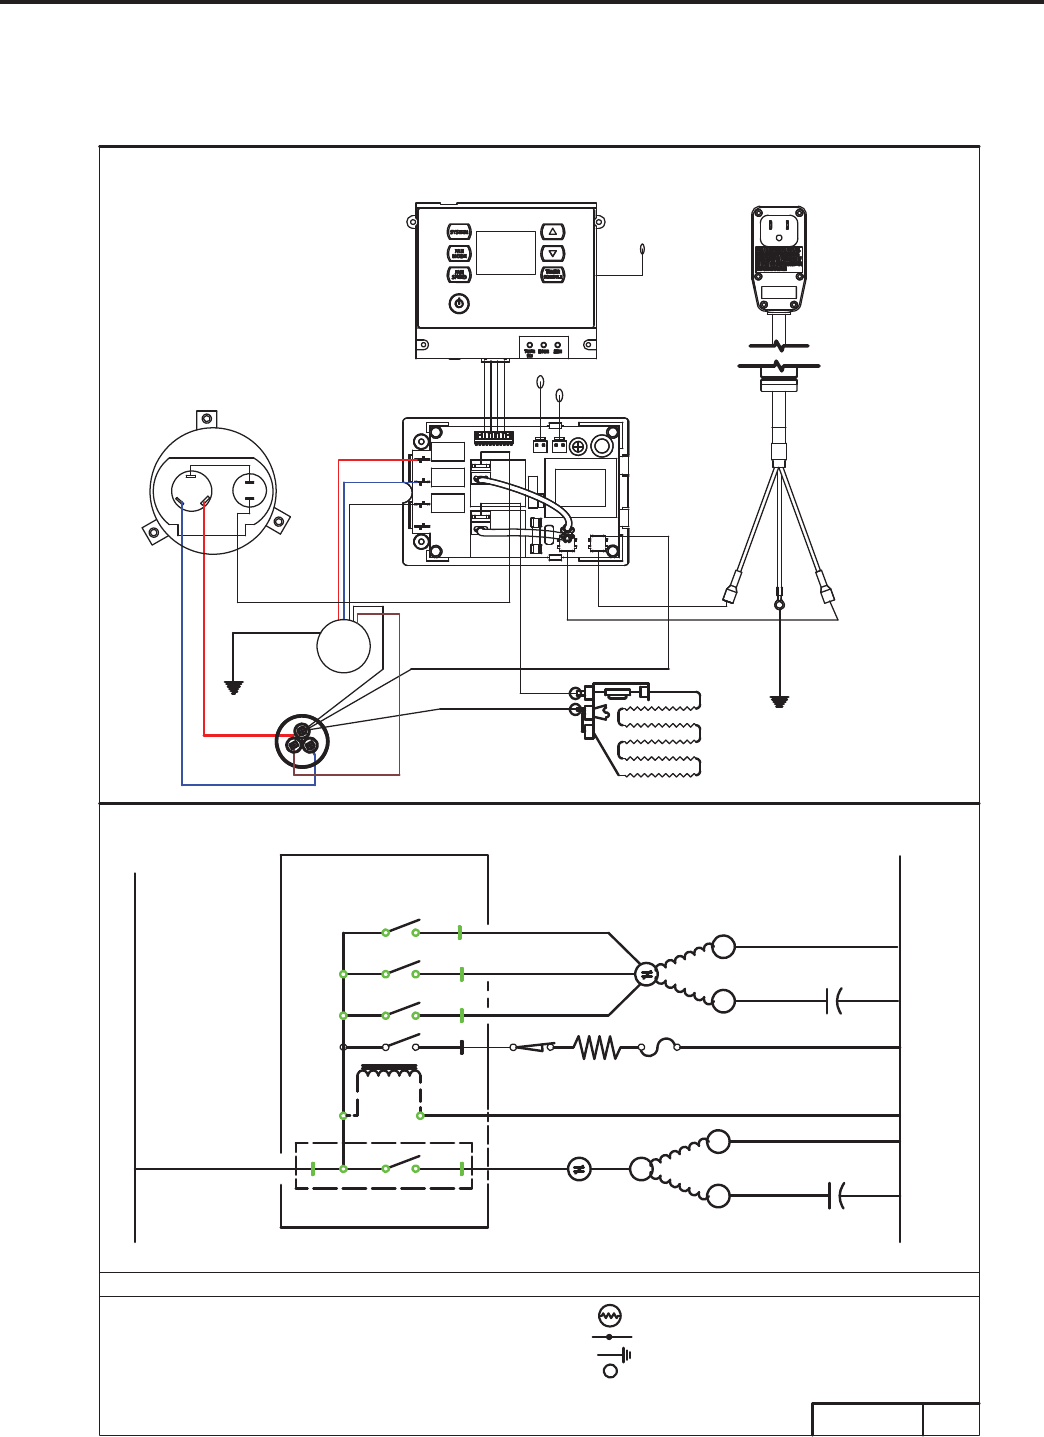 Trane Xe70 Wiring Diagram besides Lg Heat Pump Wiring Diagram furthermore Antique Hotpoint Wiring Diagram besides Rheem Rgdd Wiring Diagram as well 3w5d6 York Multistage Heat Pumpand A C I M Trying Hook. on friedrich thermostat wiring diagram